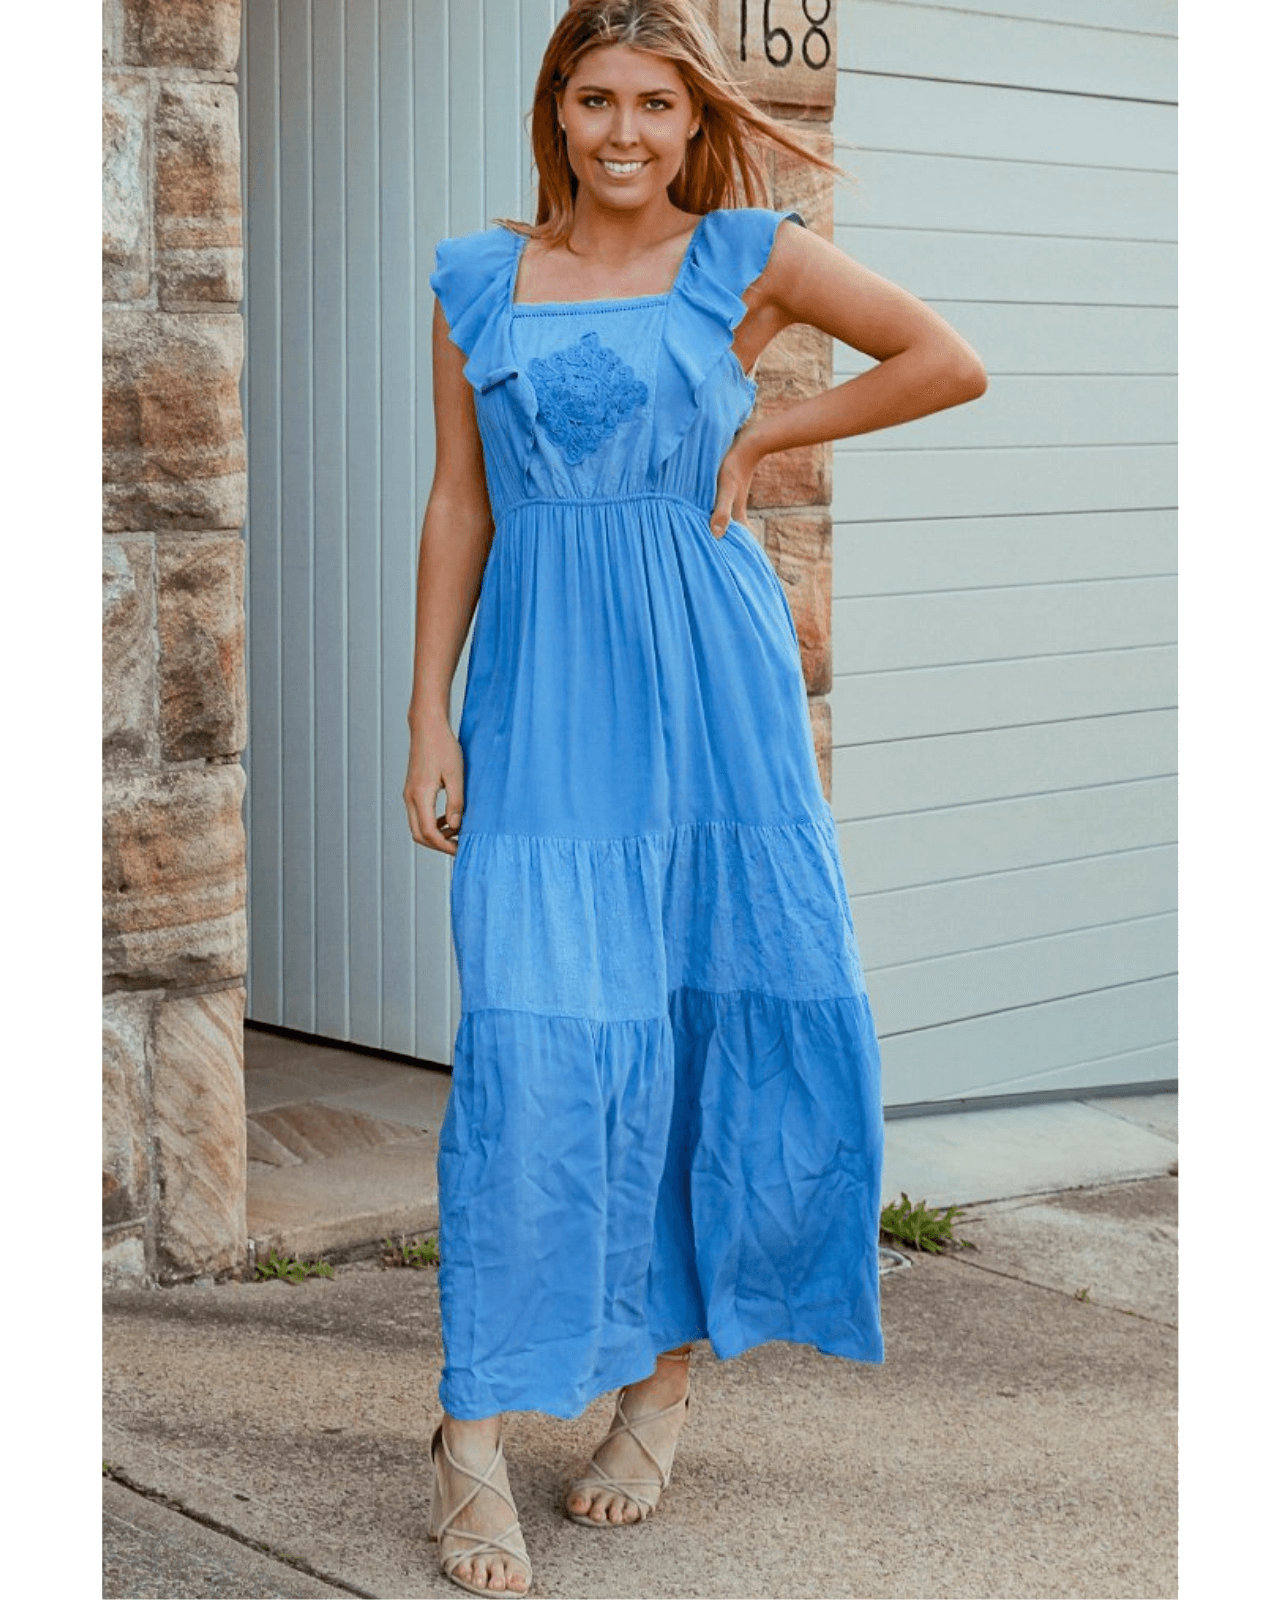 Pearl Maxi Dress - Pretty Blue